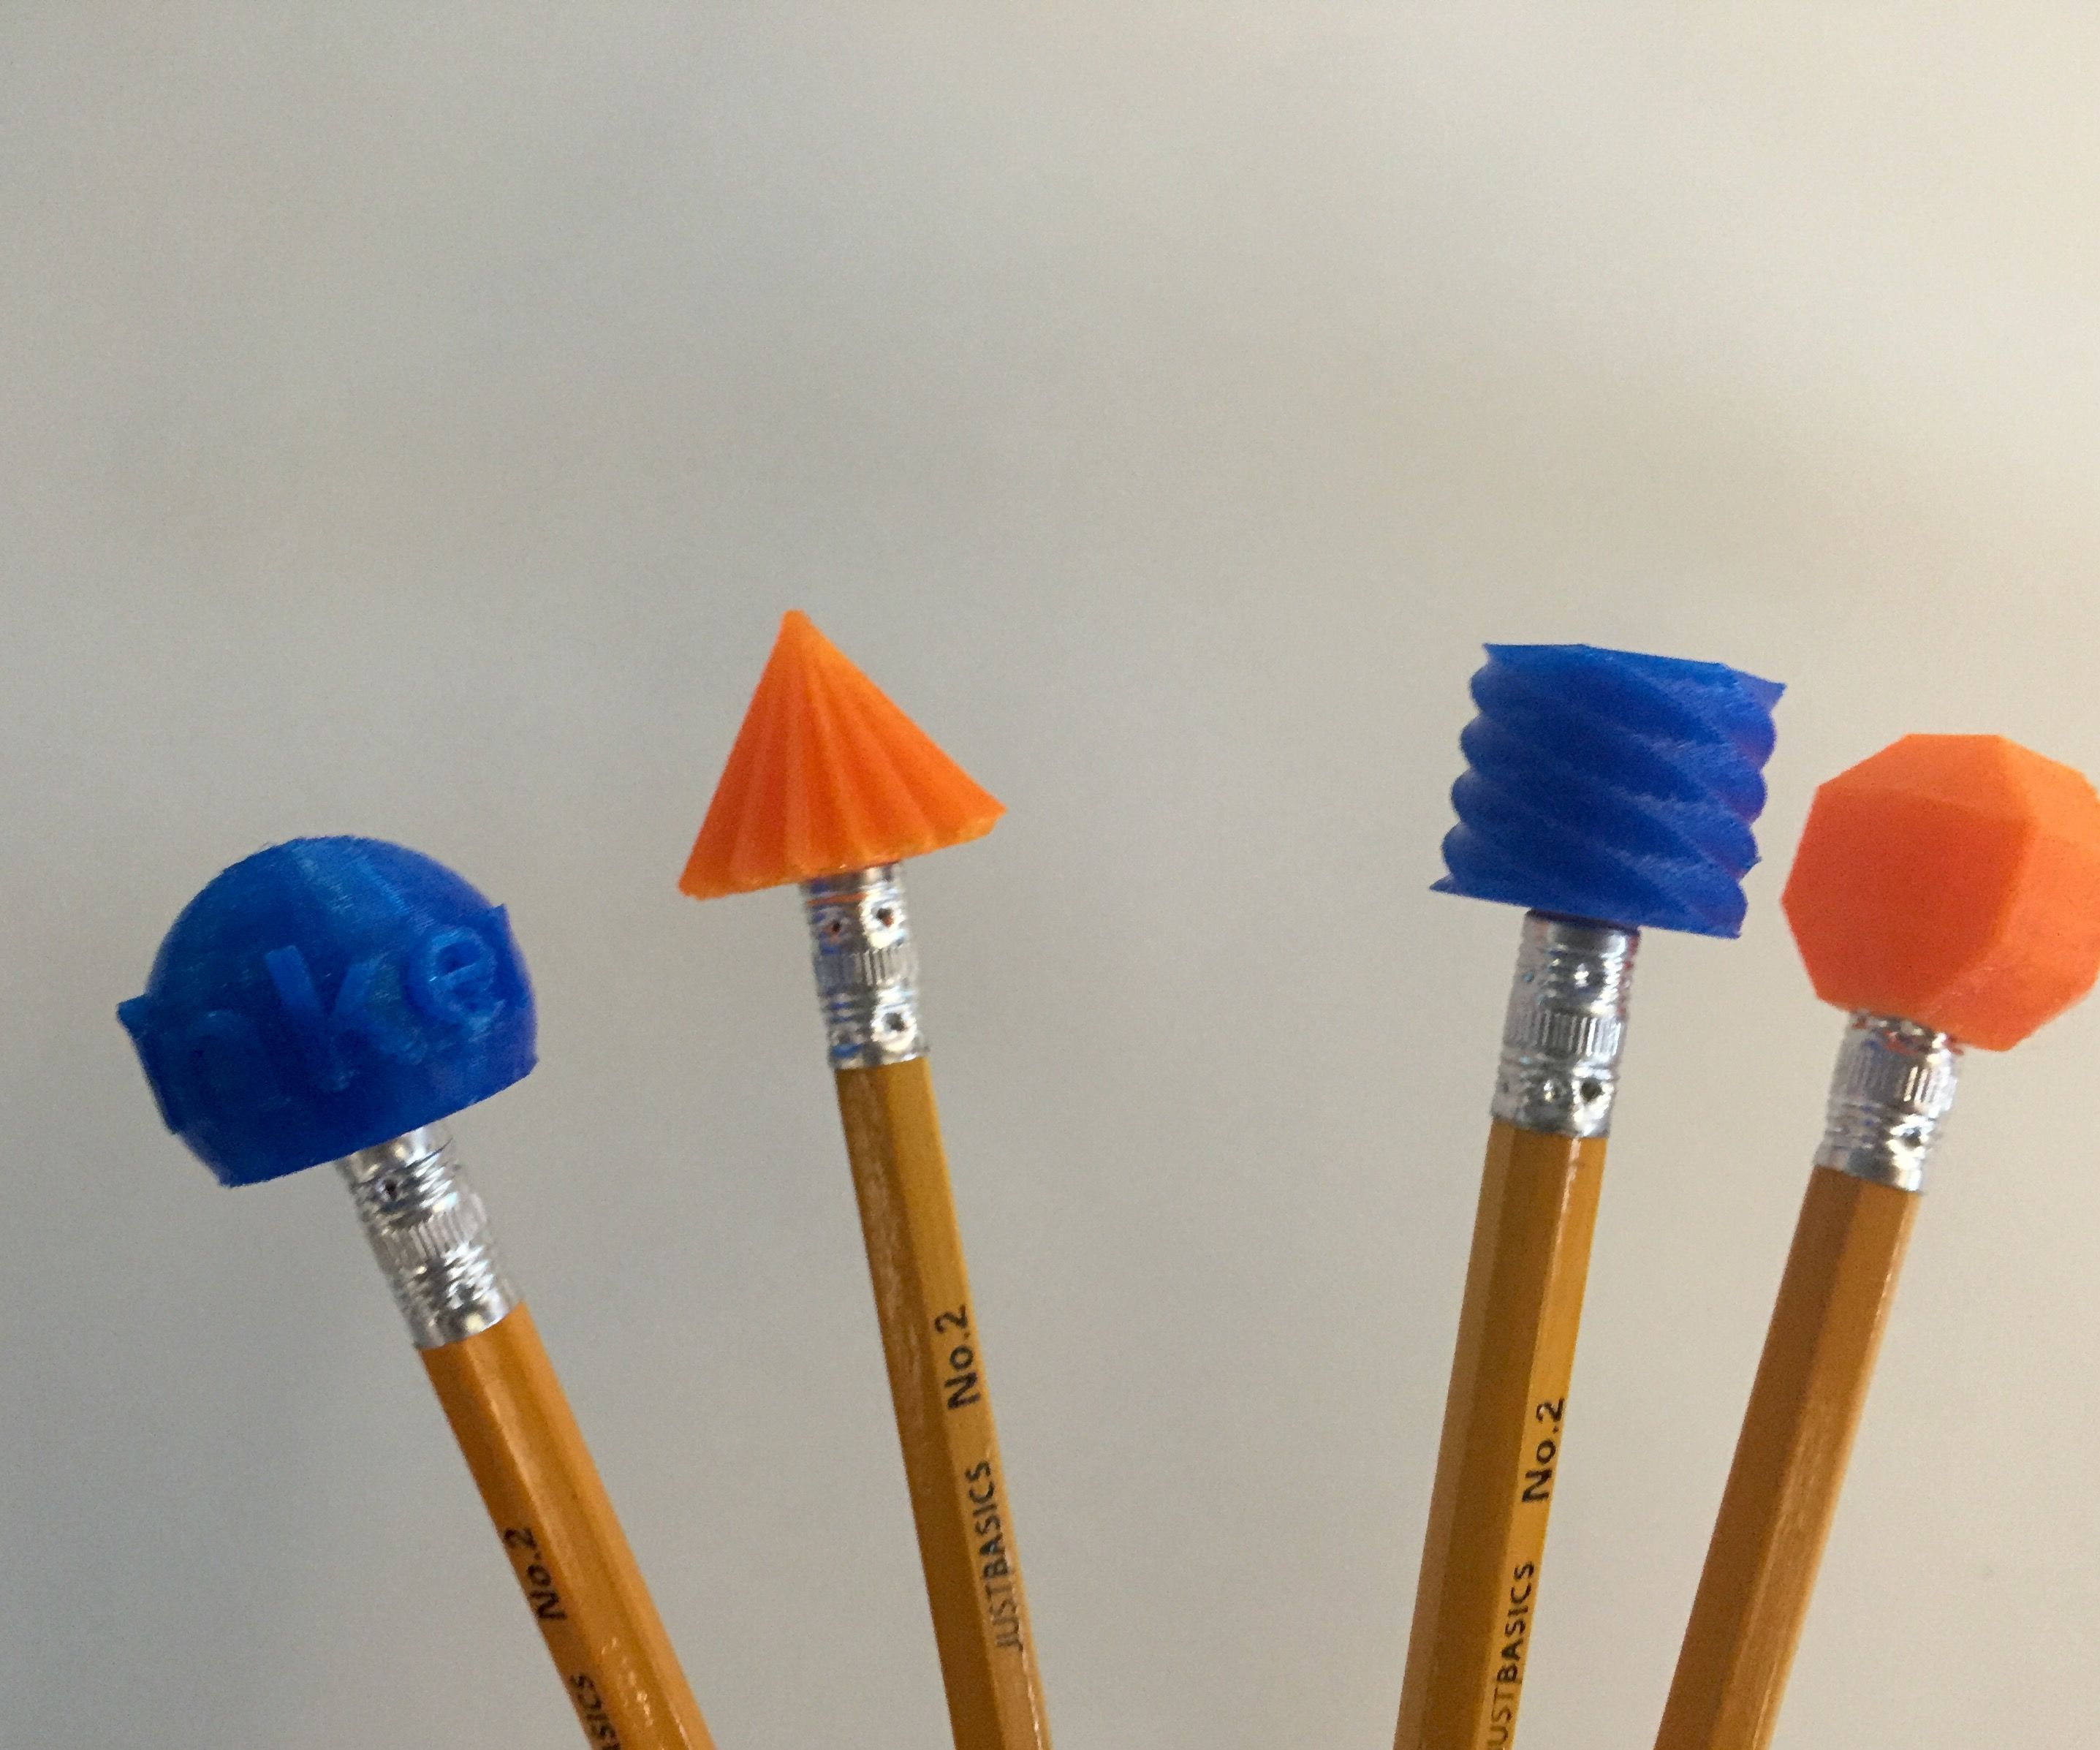 Design and 3D Print a Pencil Topper